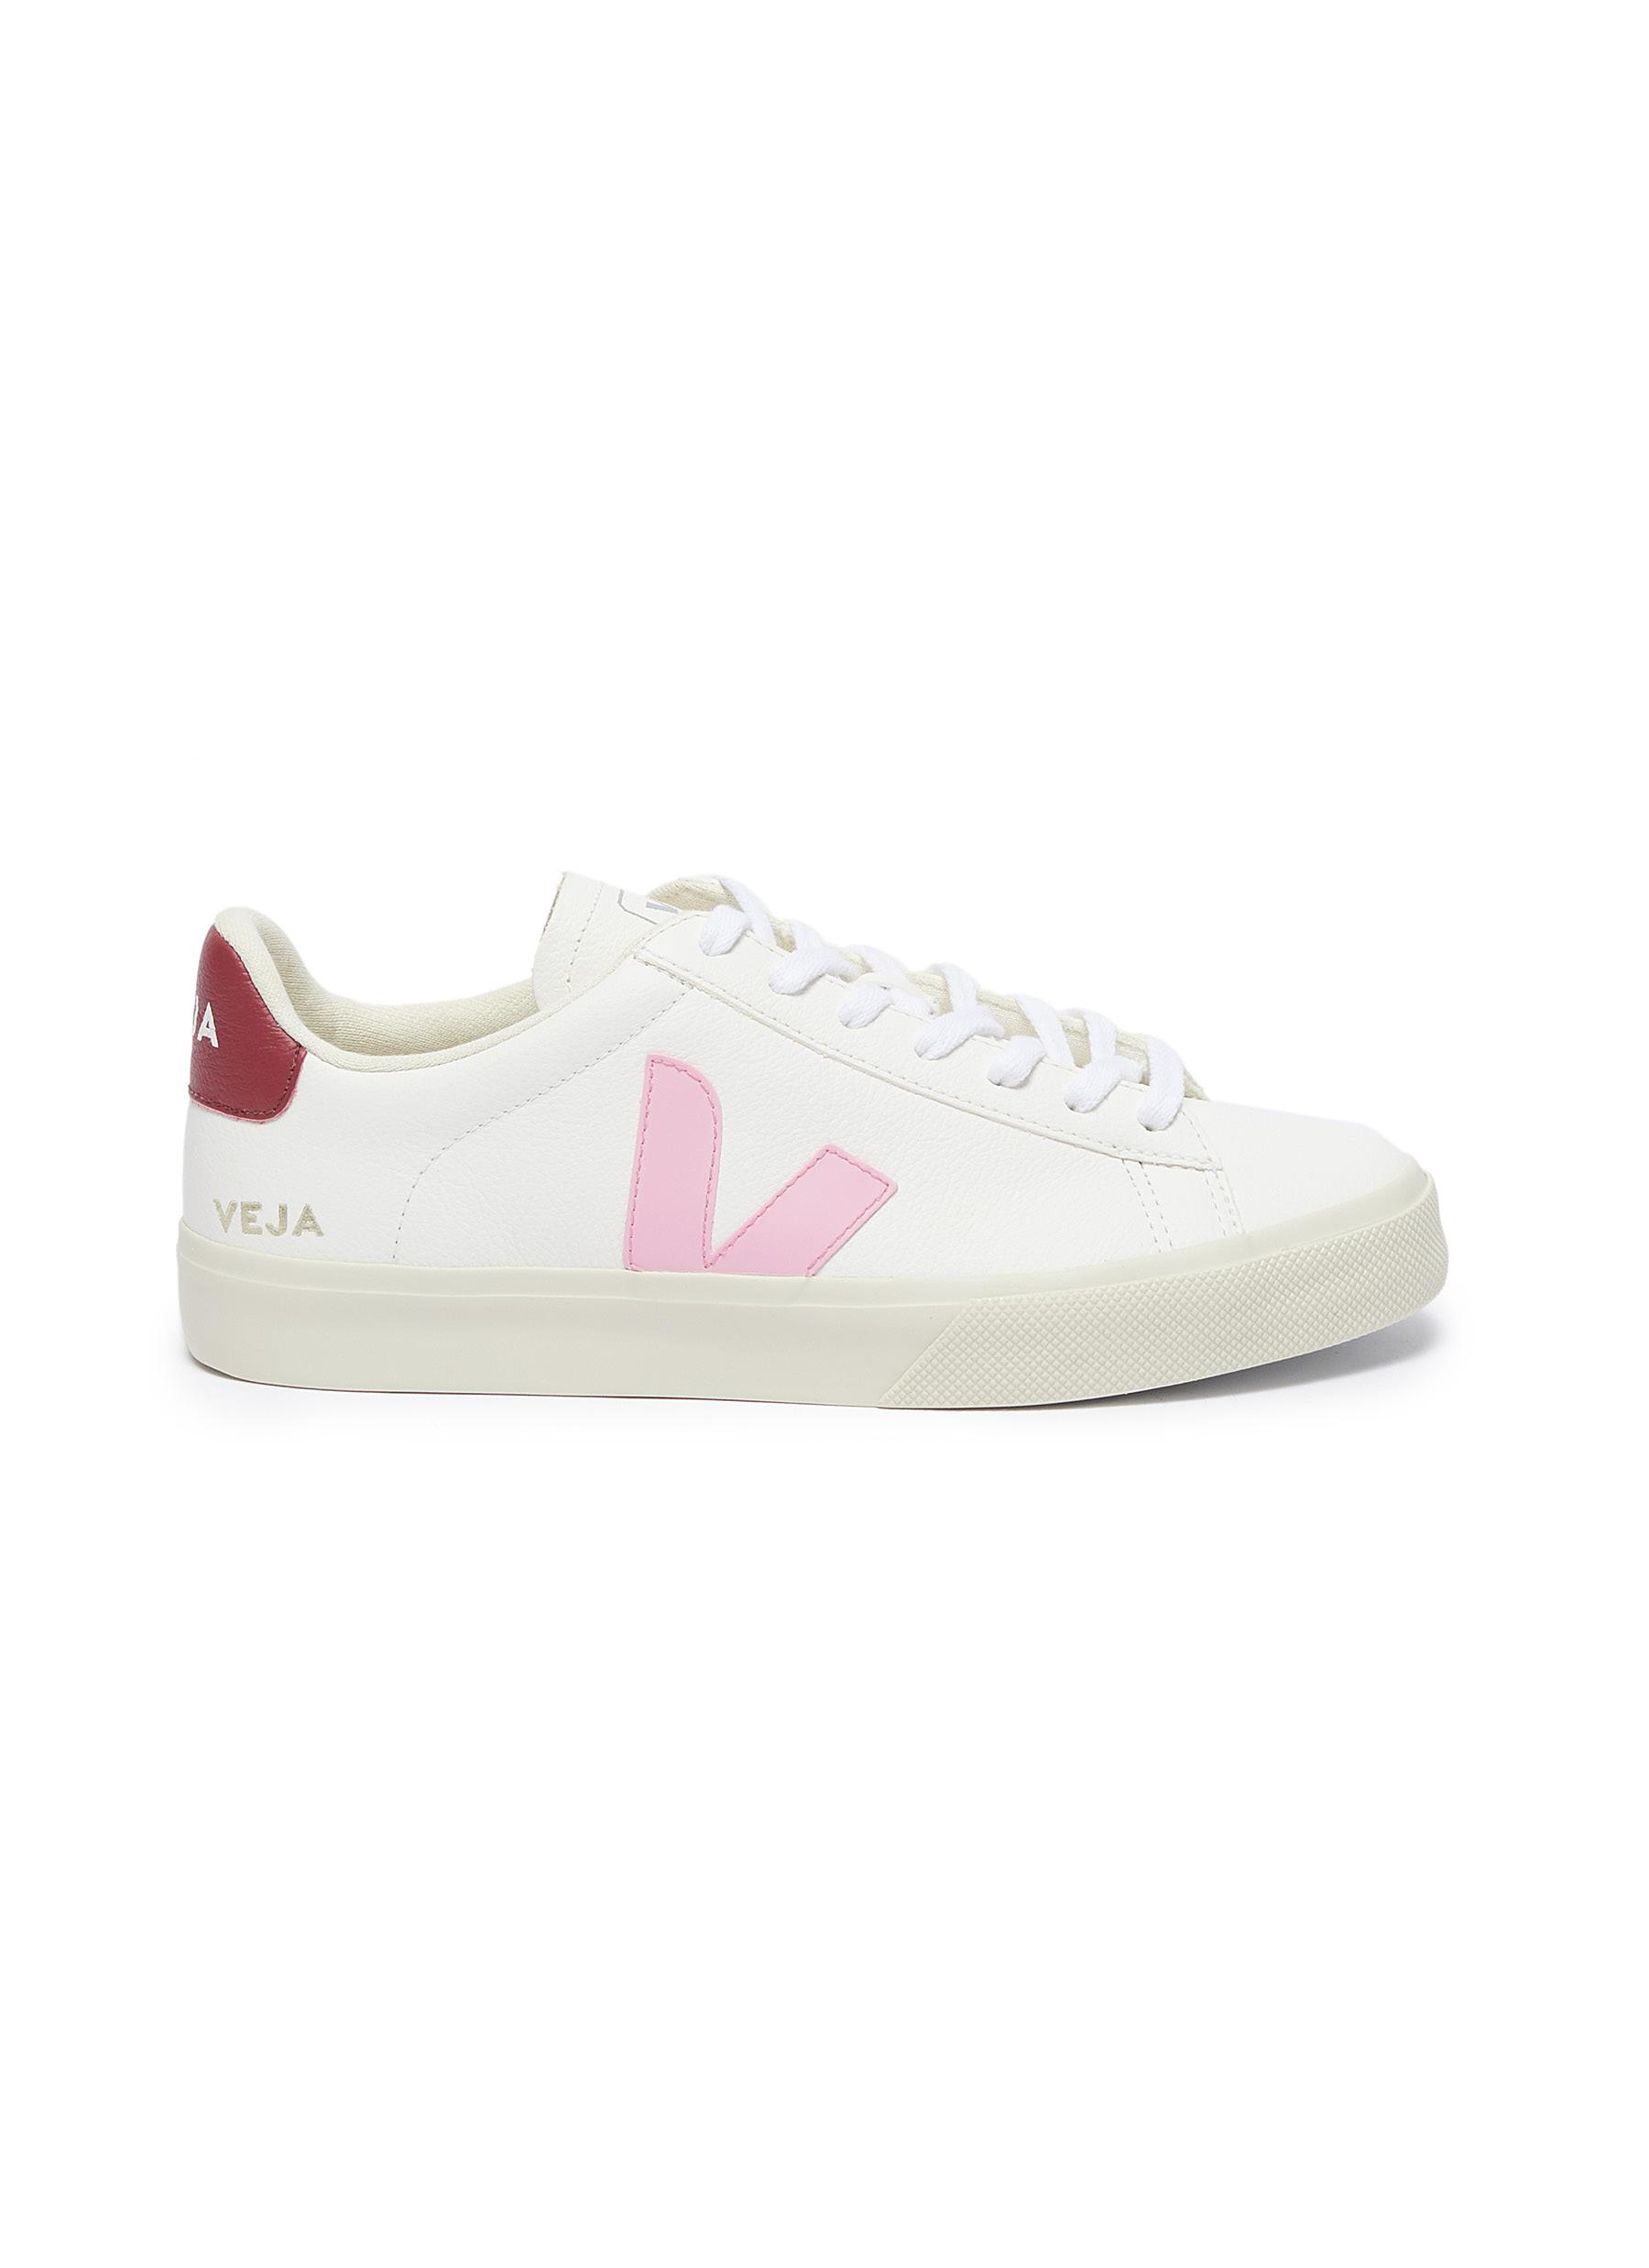 VEJA 'CAMPO' CHROMEFREE LEATHER SNEAKERS